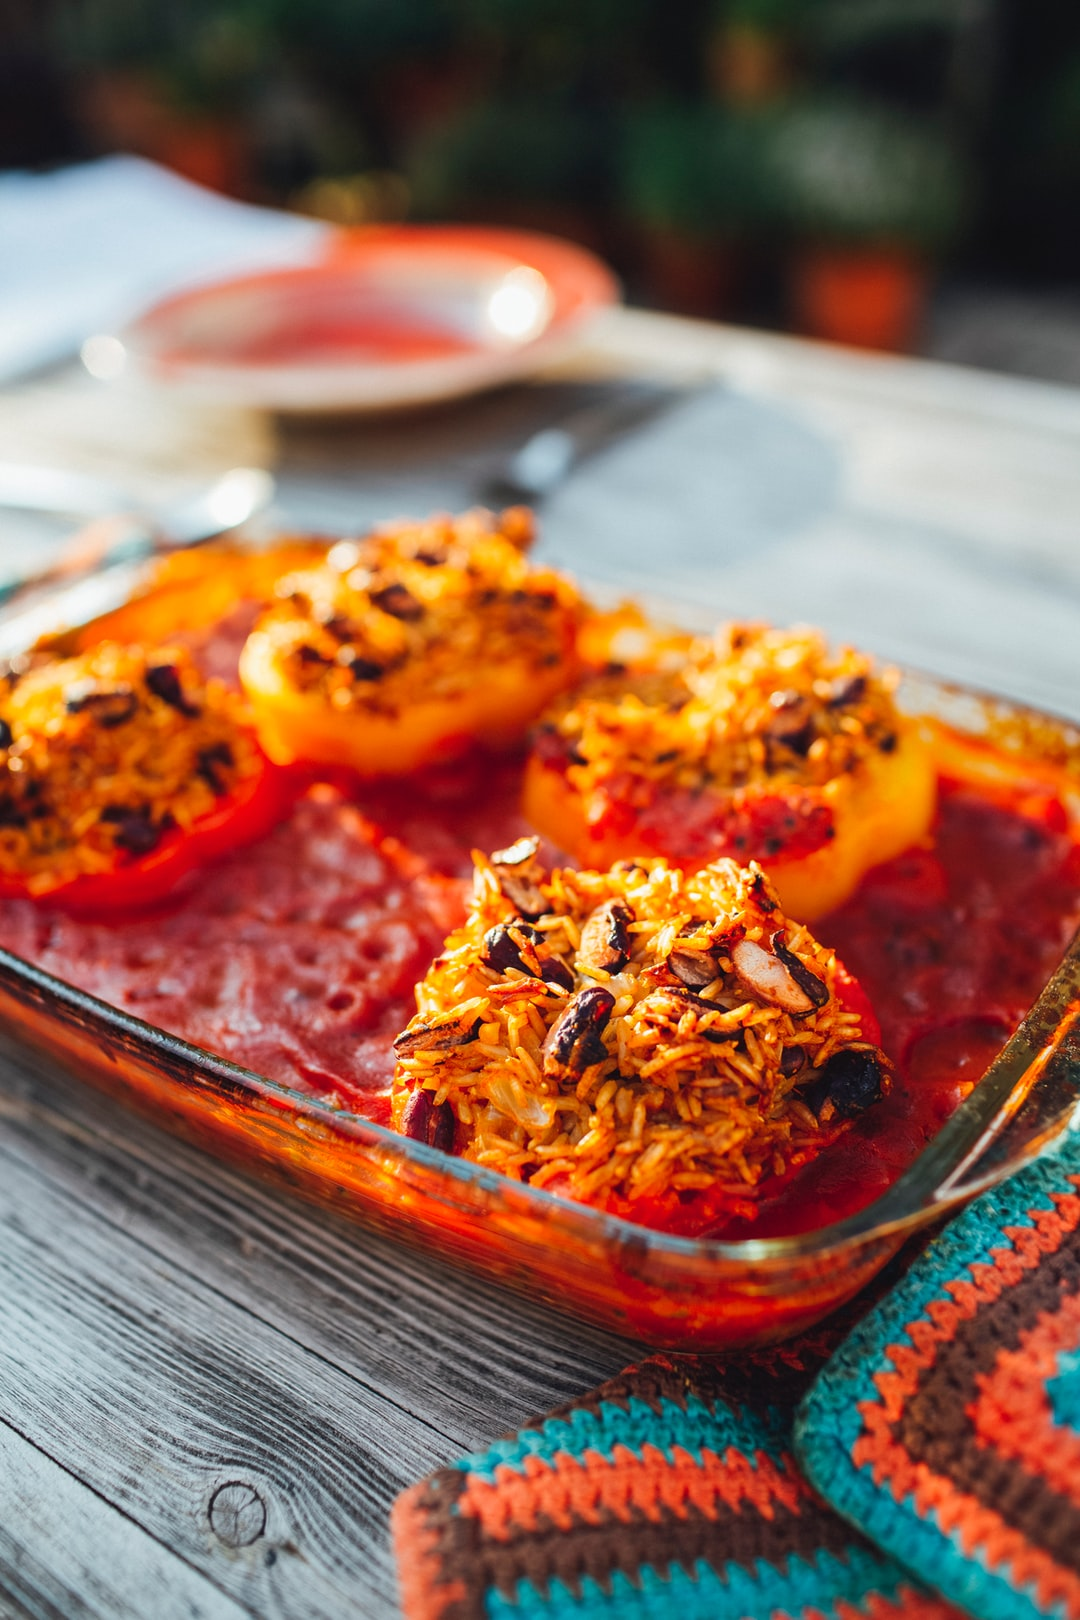 Vegan cuisine – Casserole stuffed peppers with rice and beans